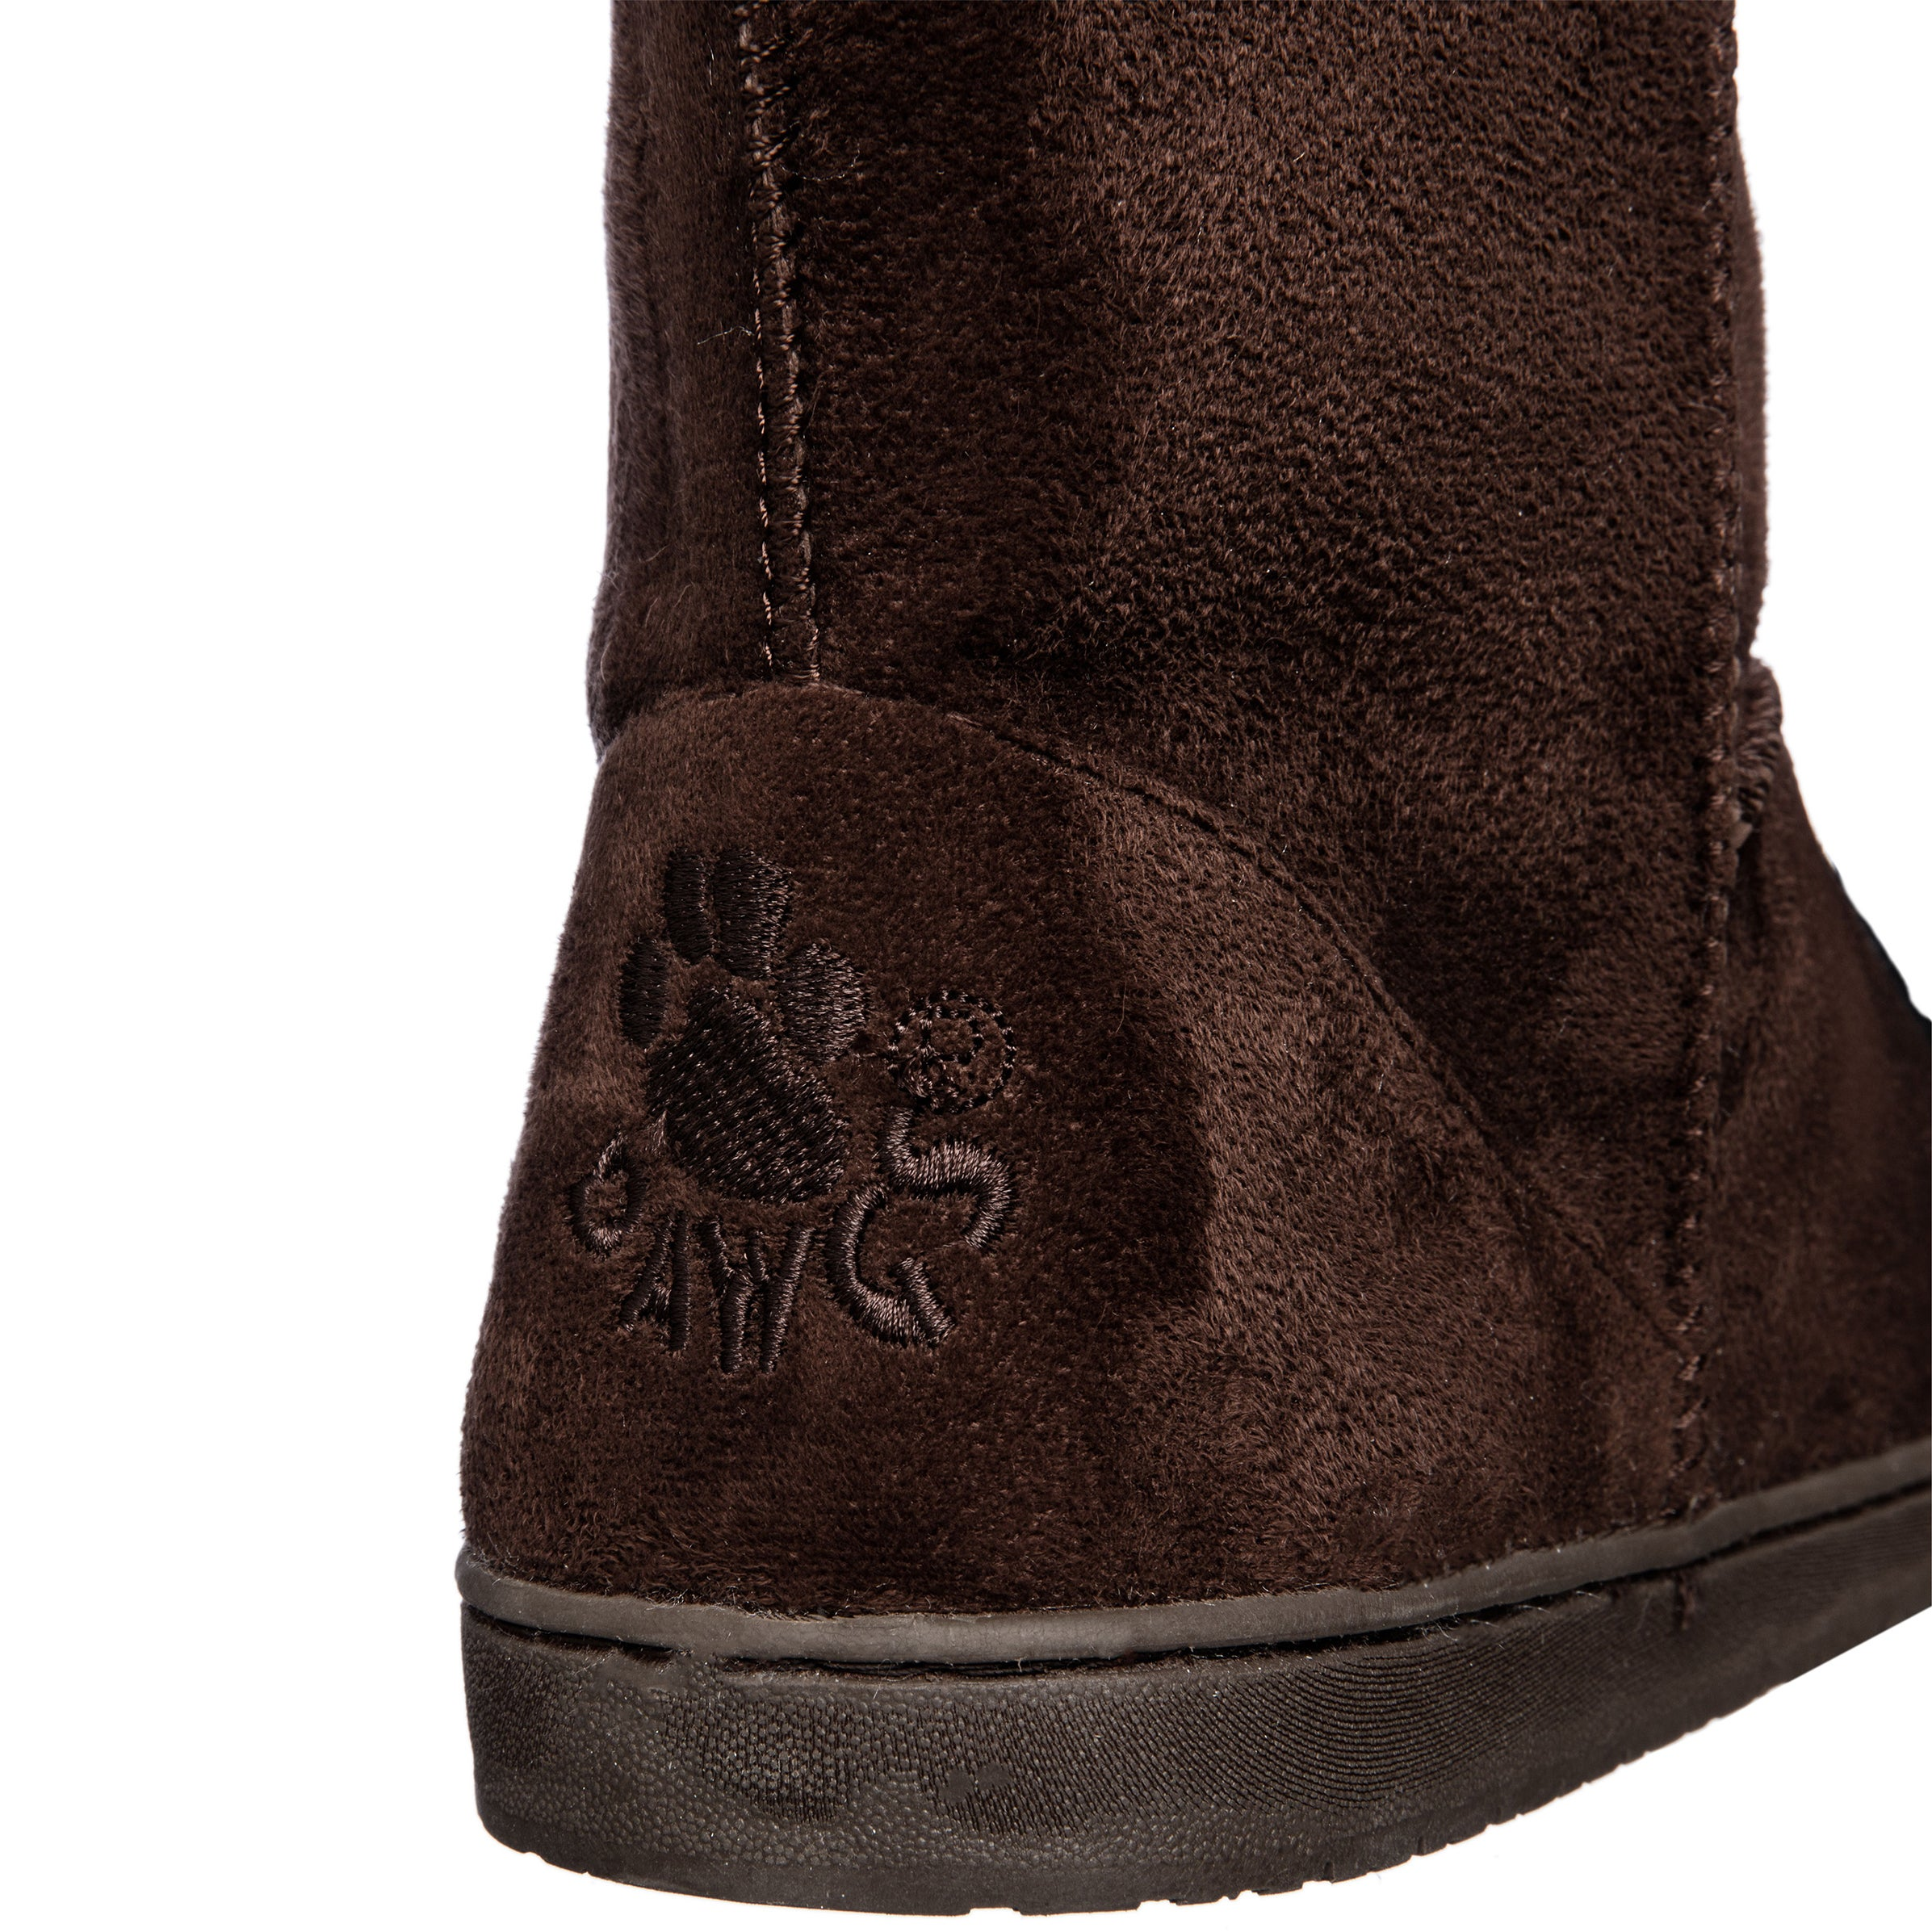 97cc7bf18184e5 Shop Dawgs Women s Microfiber 9-inch Cozy Boots - On Sale - Free Shipping  On Orders Over  45 - Overstock - 9998923